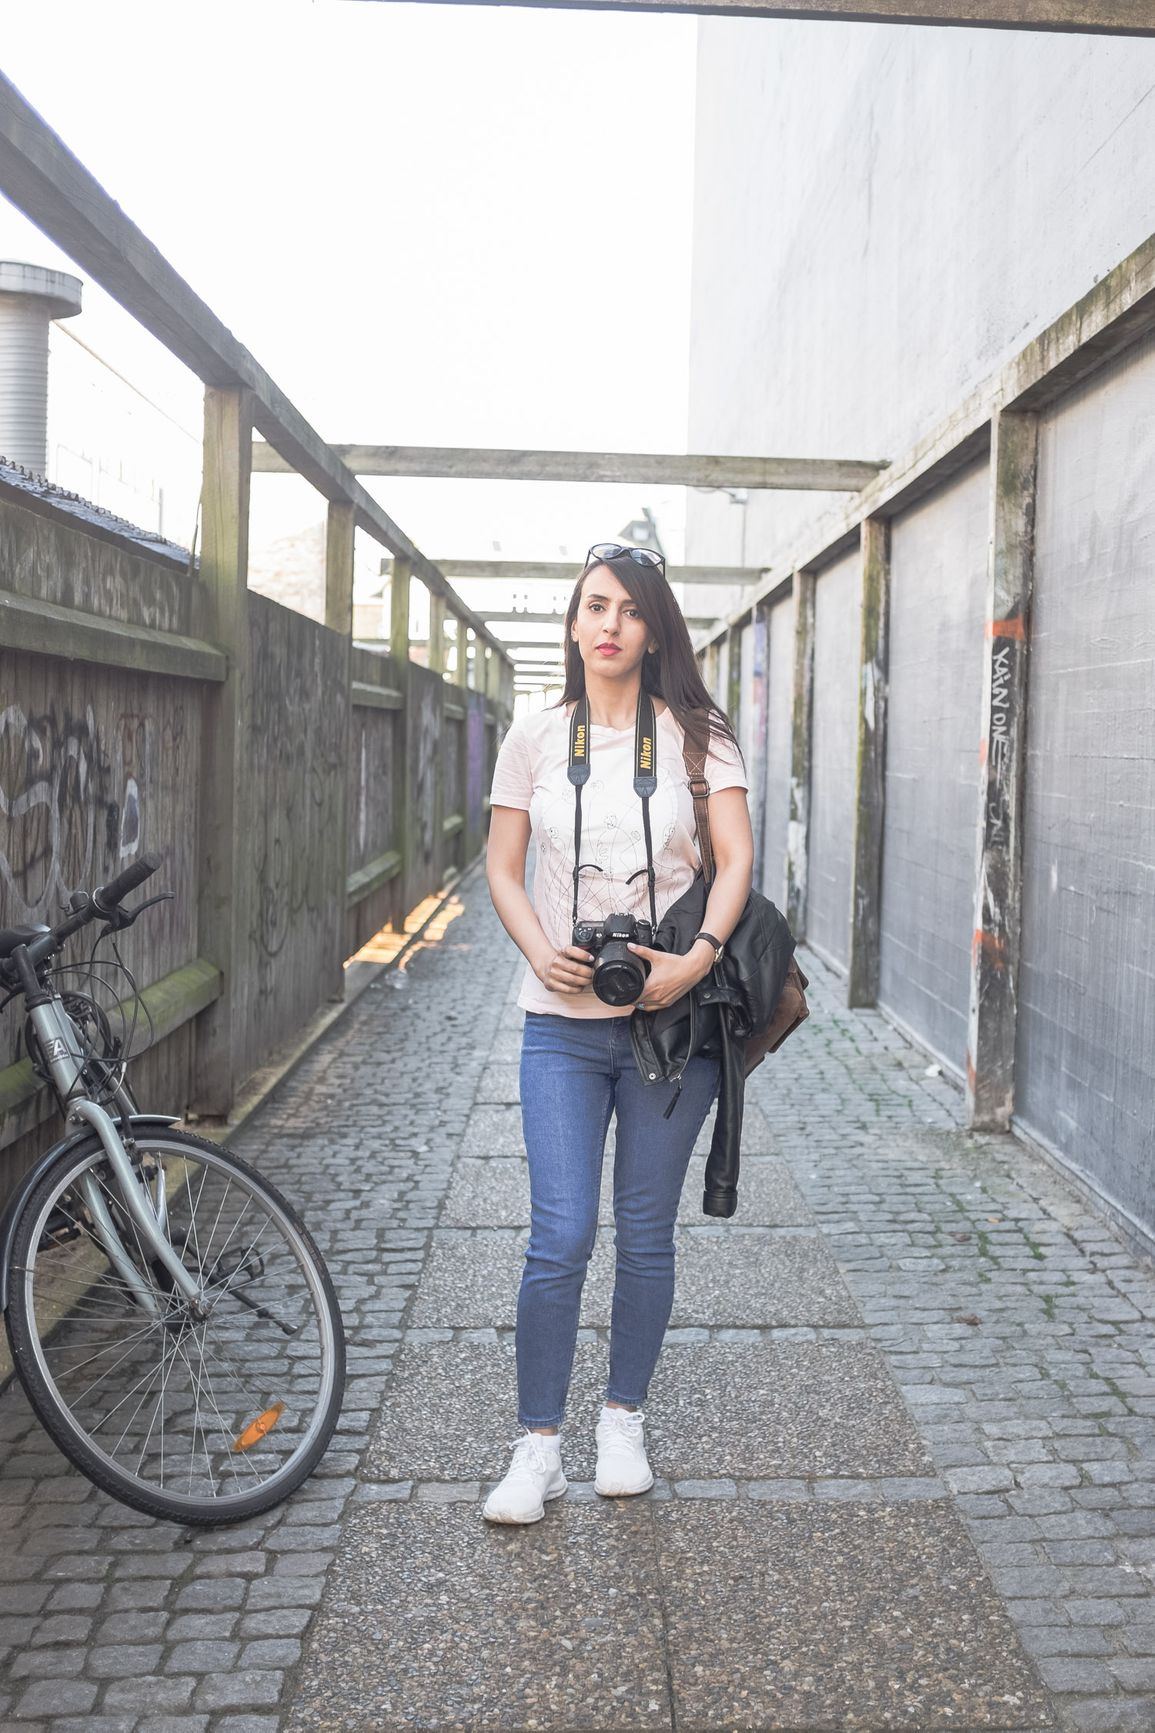 Arina standing with a Nikon camera in an alley with her bike next to her